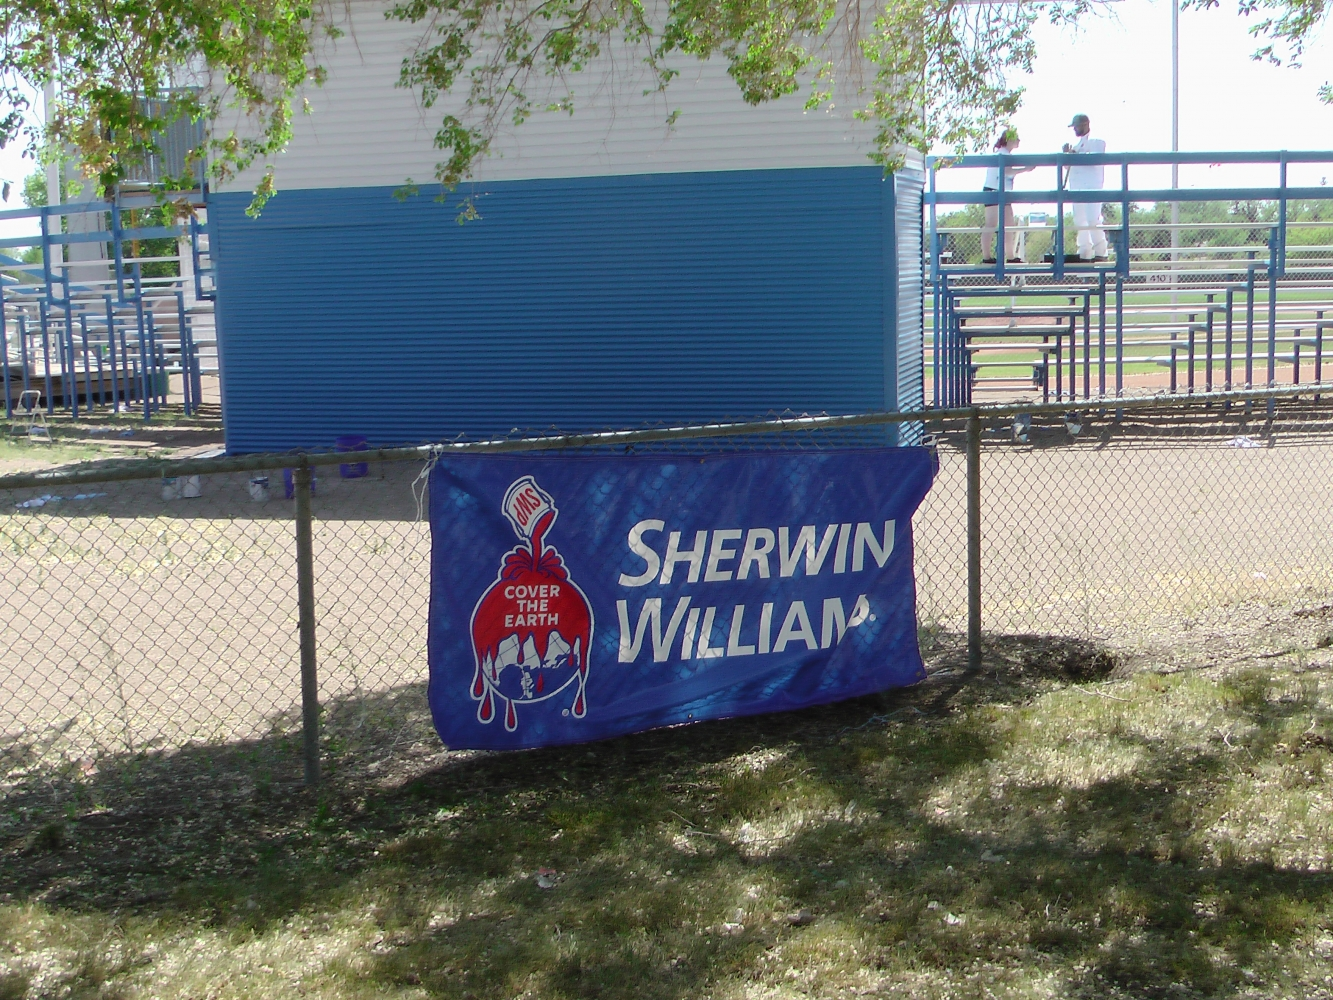 A BIG Thank You to Sherwin Williams and Staff for Supplying Volunteers and Paint for the Park! Video and Pics!